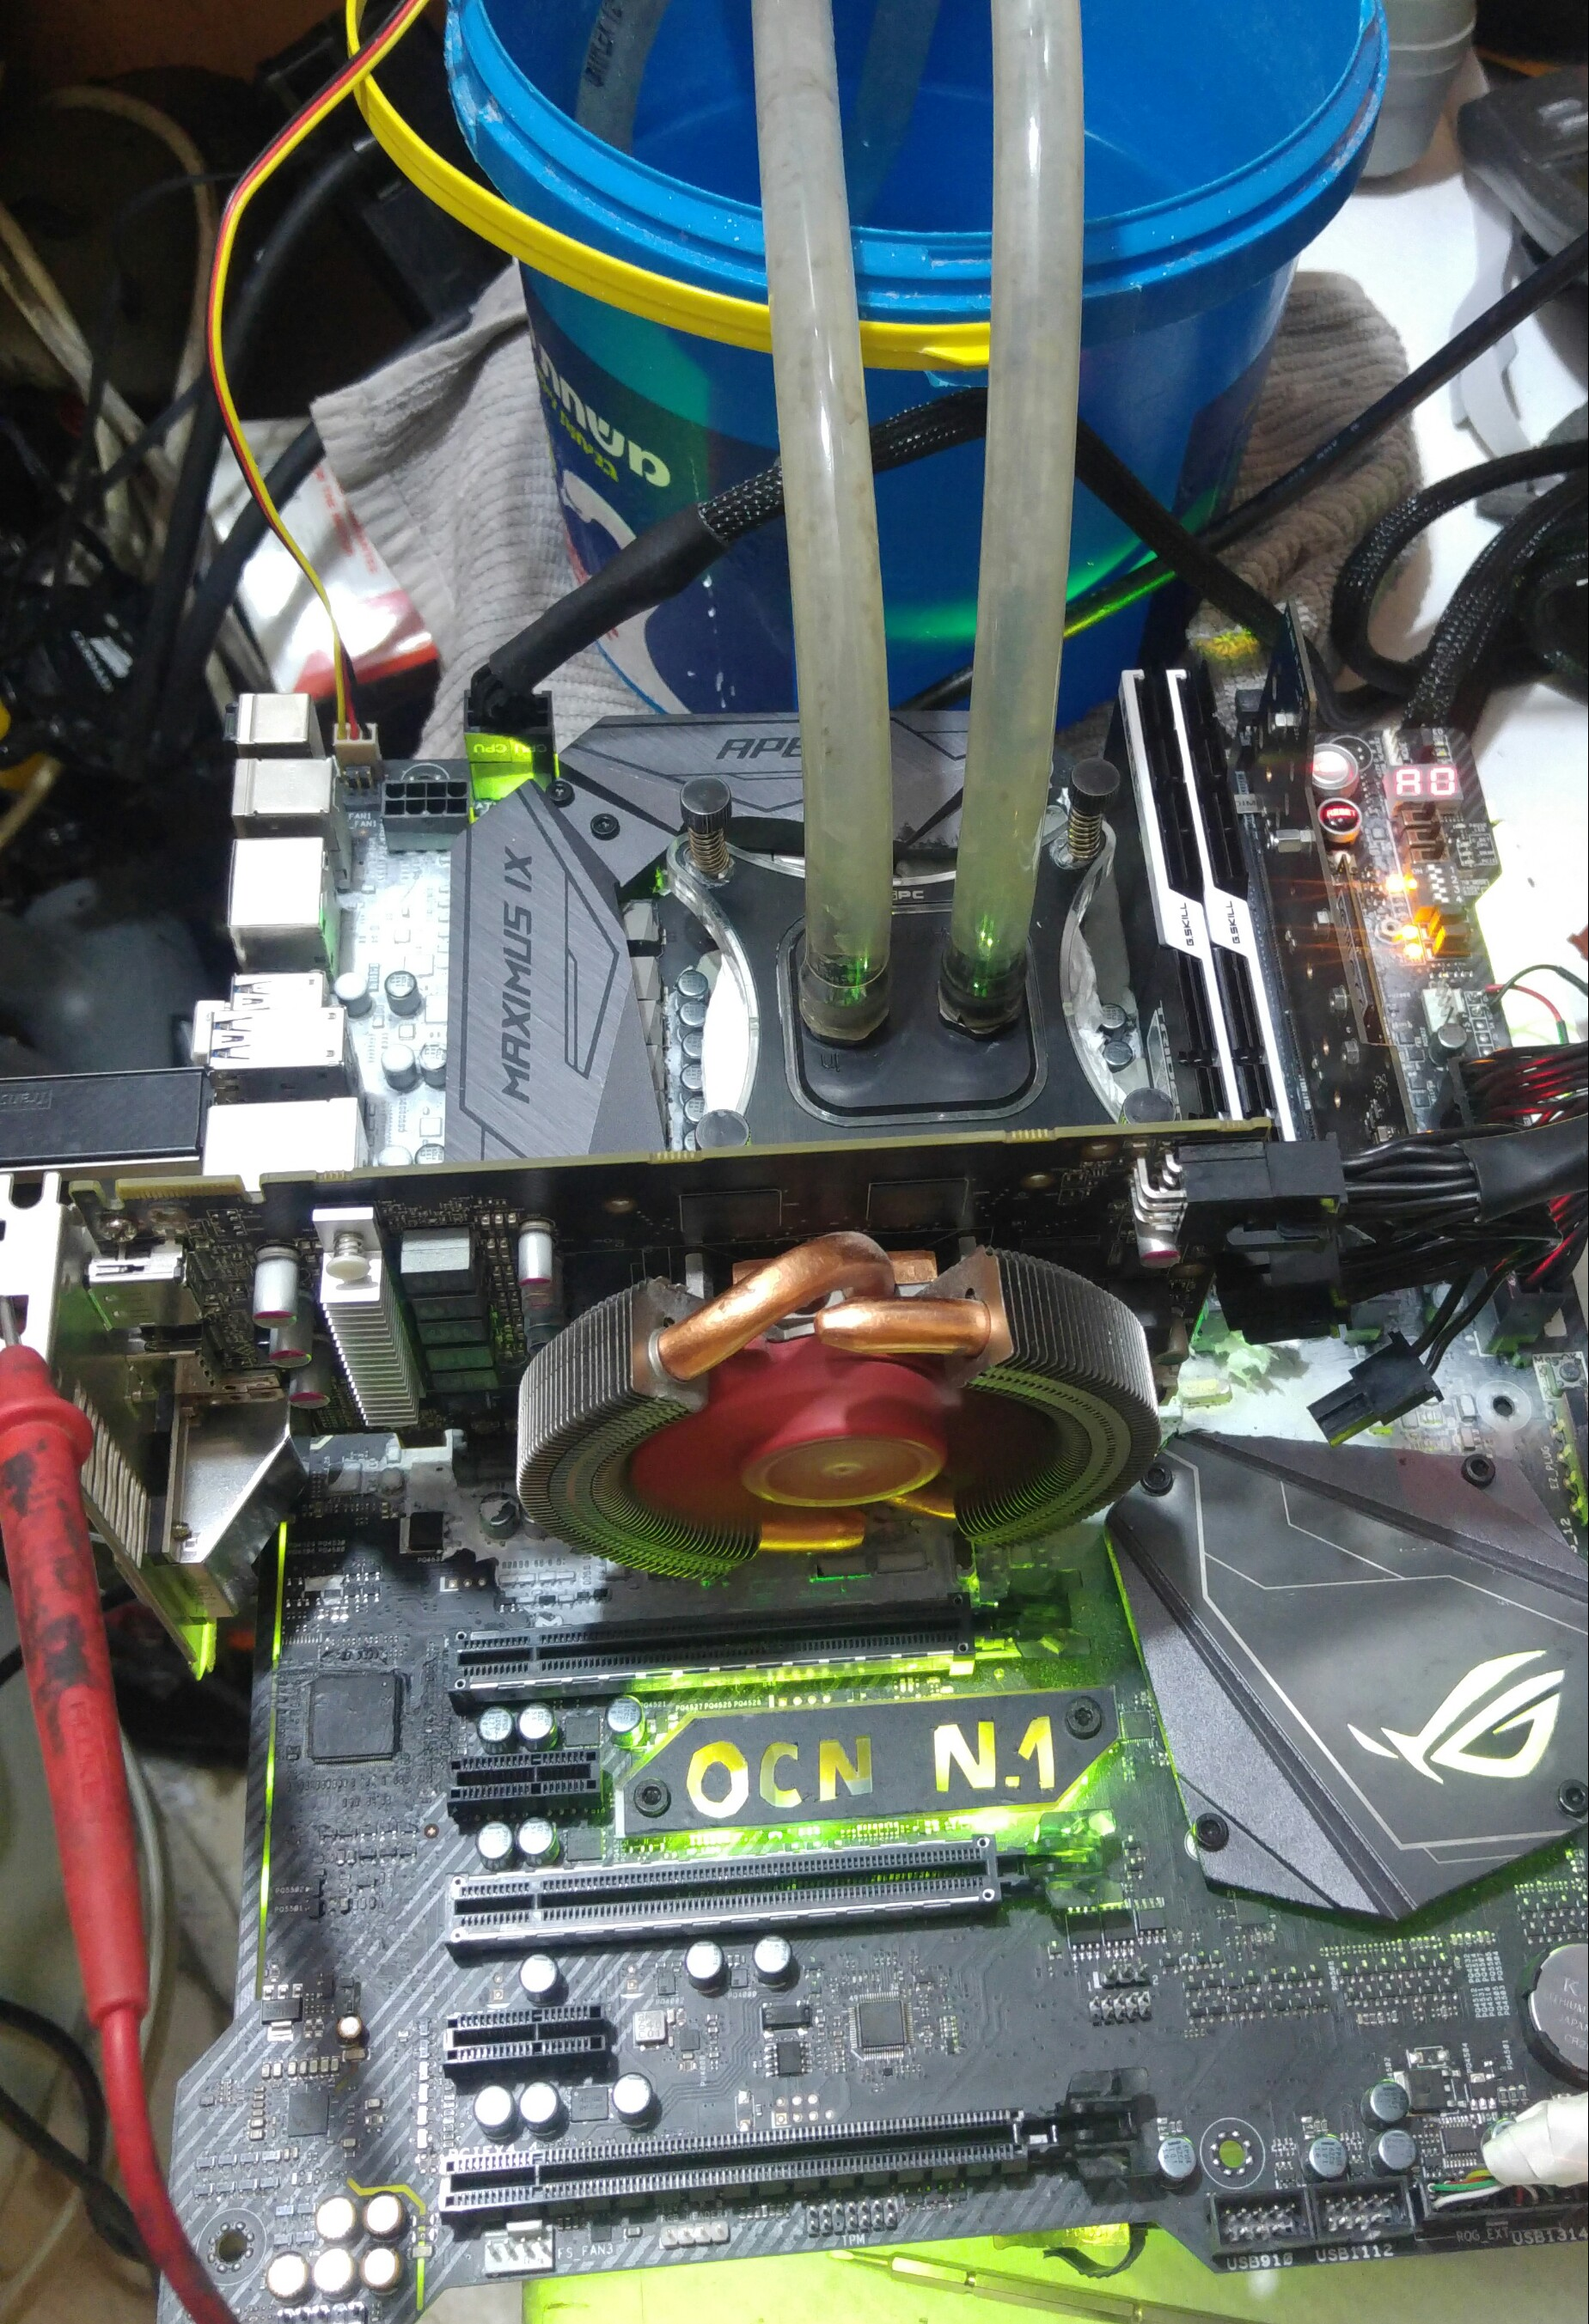 201232d1300684595-water-cooling-project-advice-haf-x-dsc00927-11-04-20.jpg?stc=1